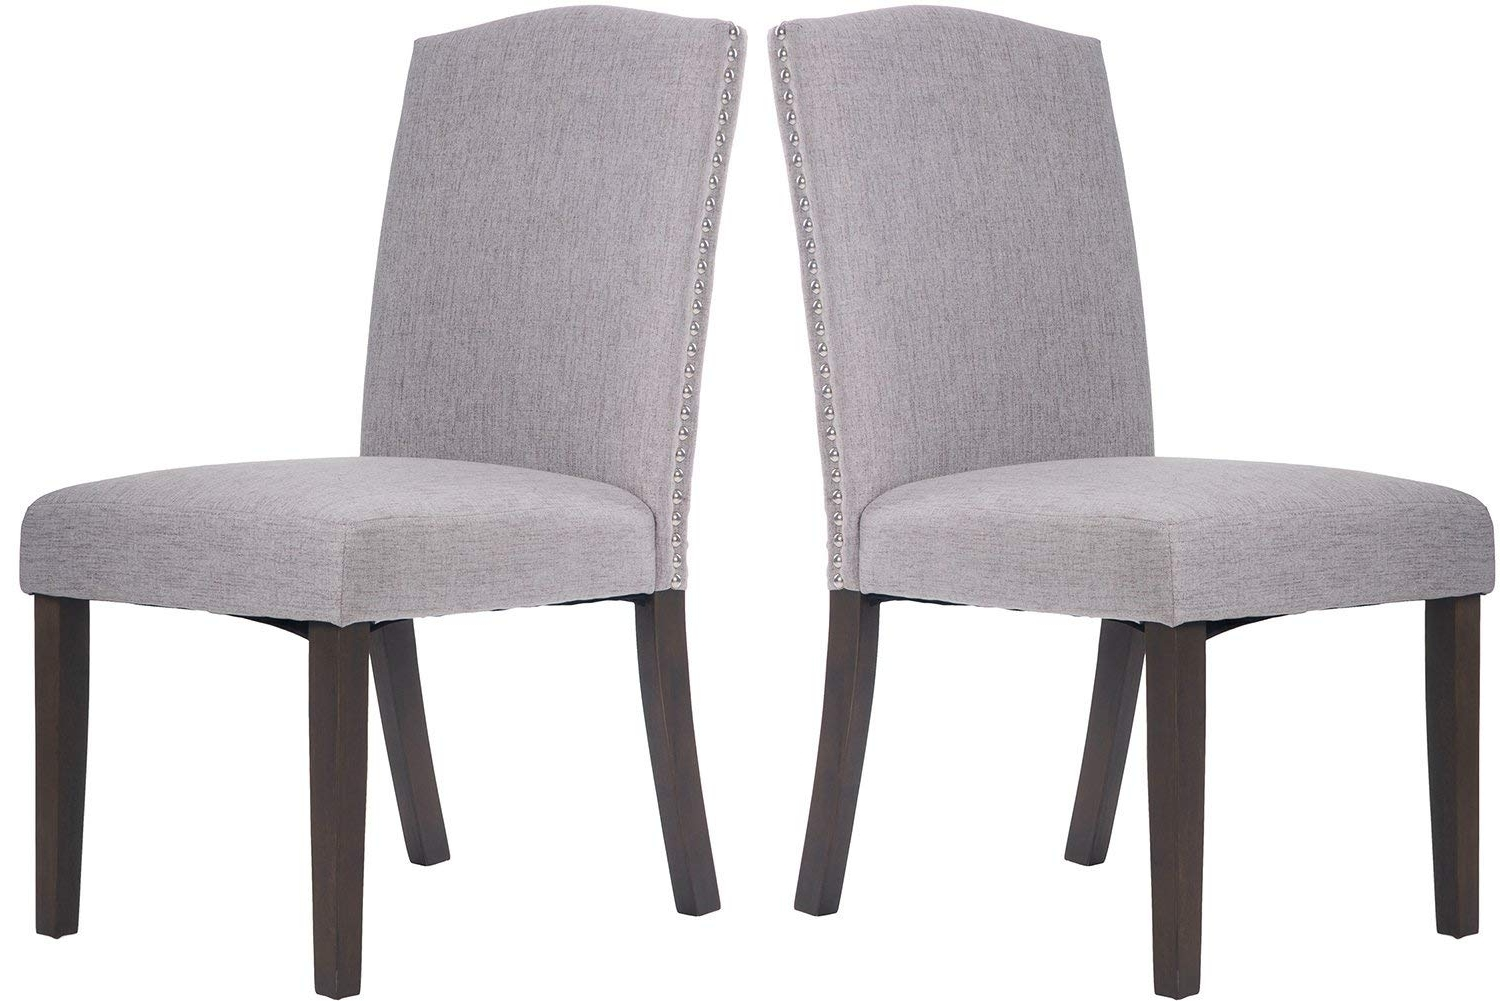 Merax Fabric Dining Chairs Set Of 2 With Solid Wood Legs Room For Most Recently Released Fabric Dining Room Chairs (View 9 of 25)